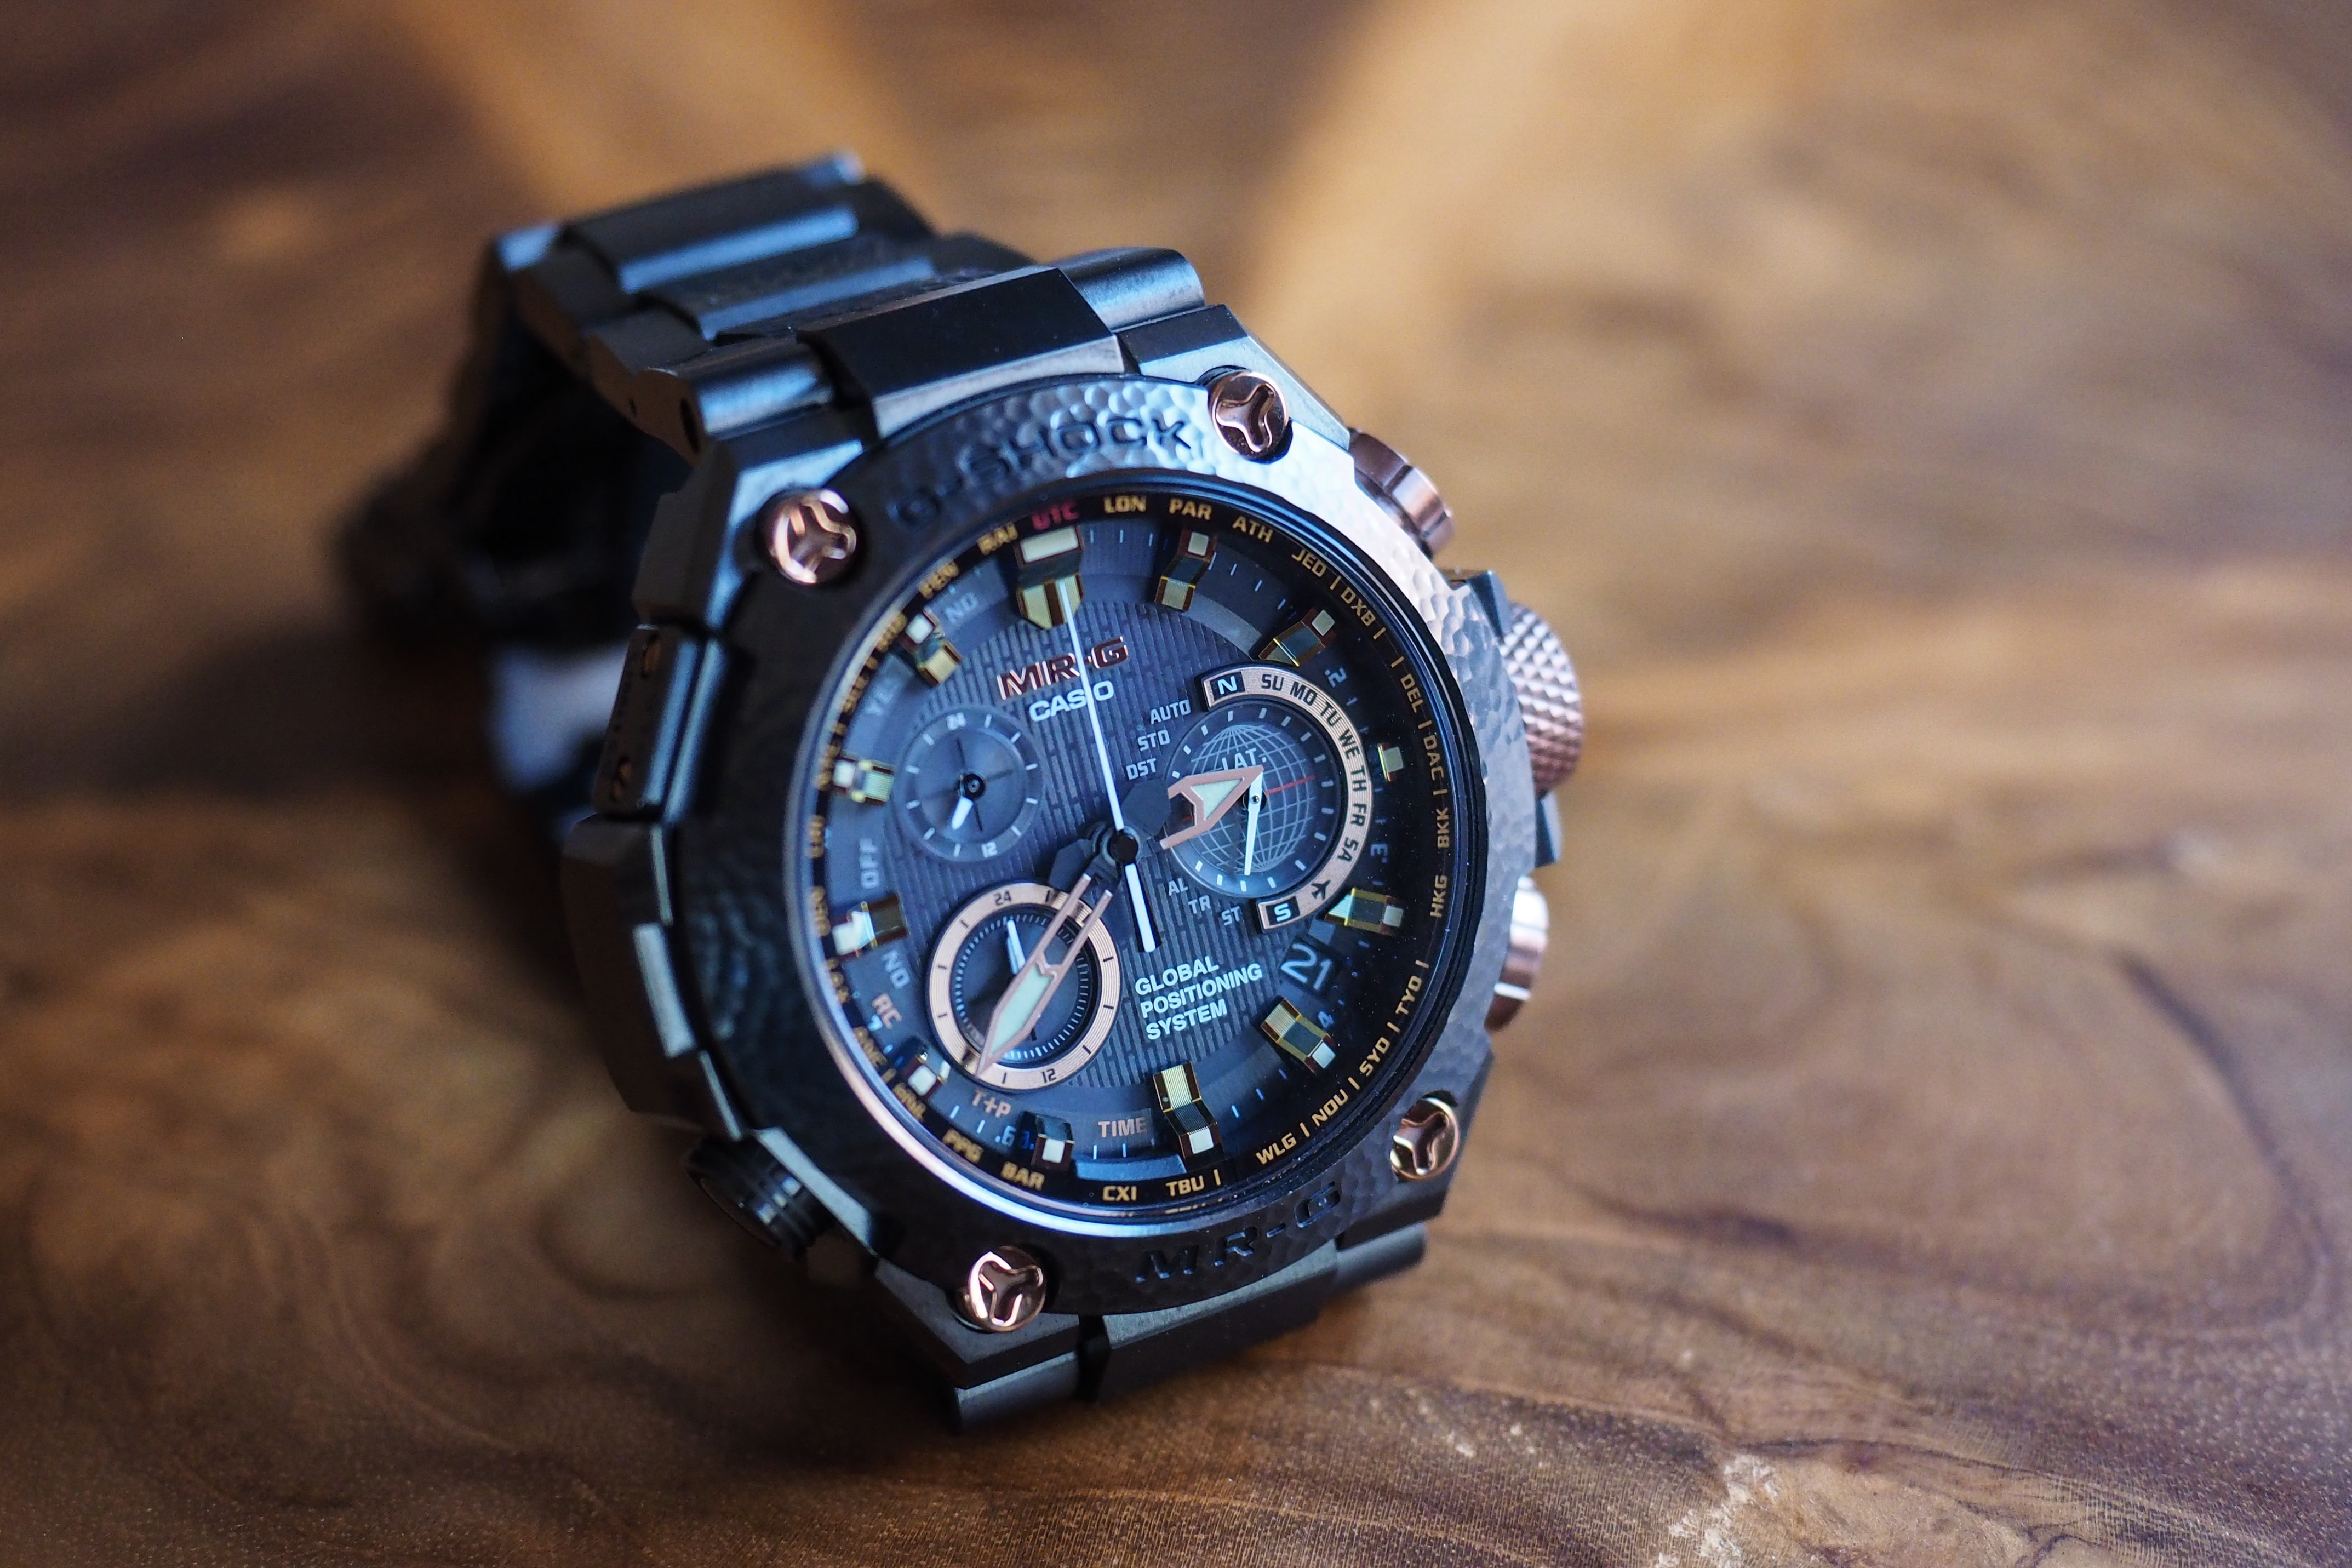 In-Depth: Cyborg Samurai: The Casio G-Shock MR-G Limited Edition 'Hammer Tone' In-Depth: Cyborg Samurai: The Casio G-Shock MR-G Limited Edition 'Hammer Tone' P4210002